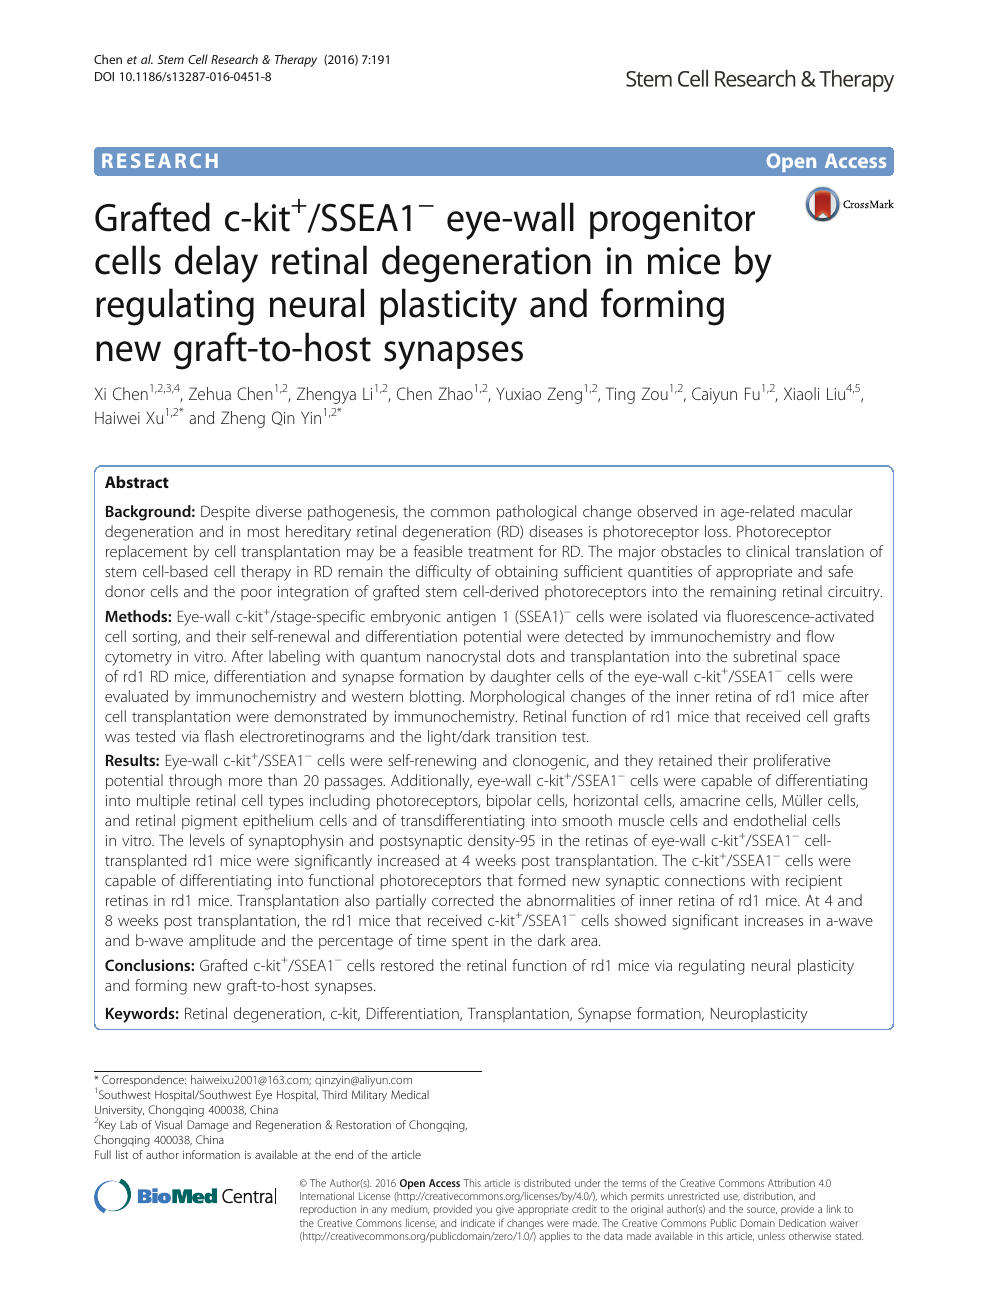 Grafted c-kit+/SSEA1− eye-wall progenitor cells delay